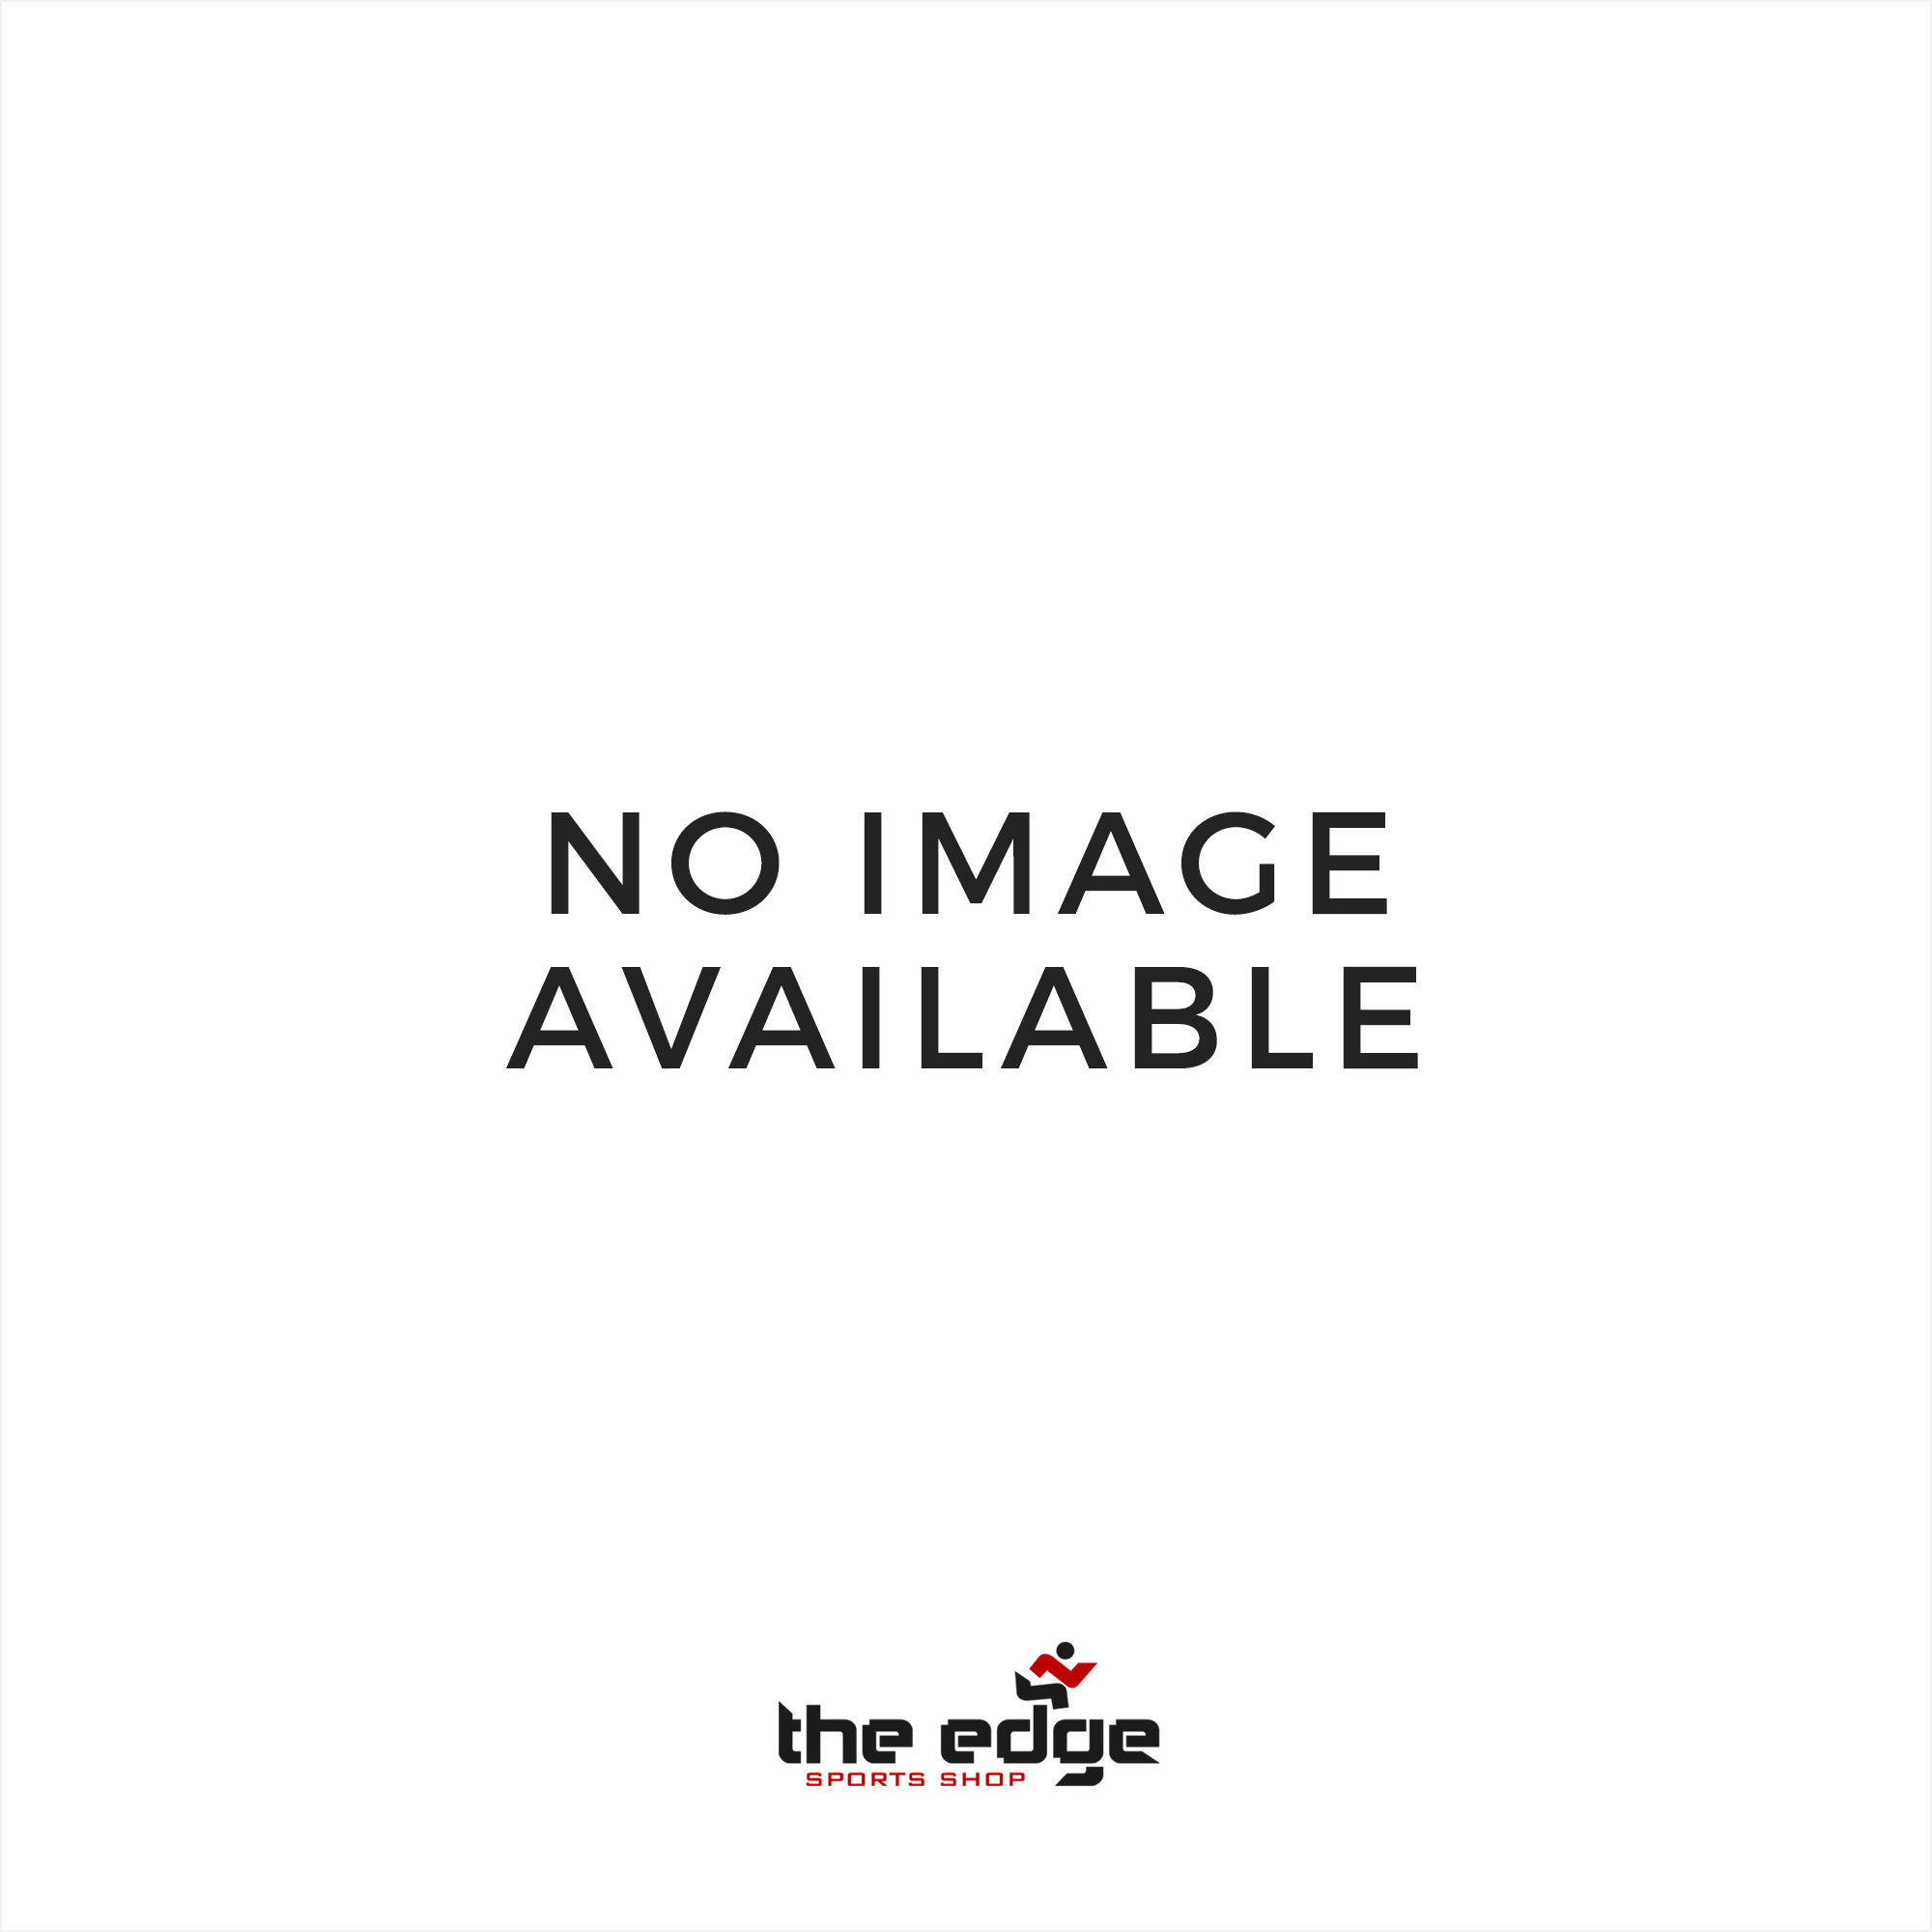 Tacx Bracket For Tablets And Ipads